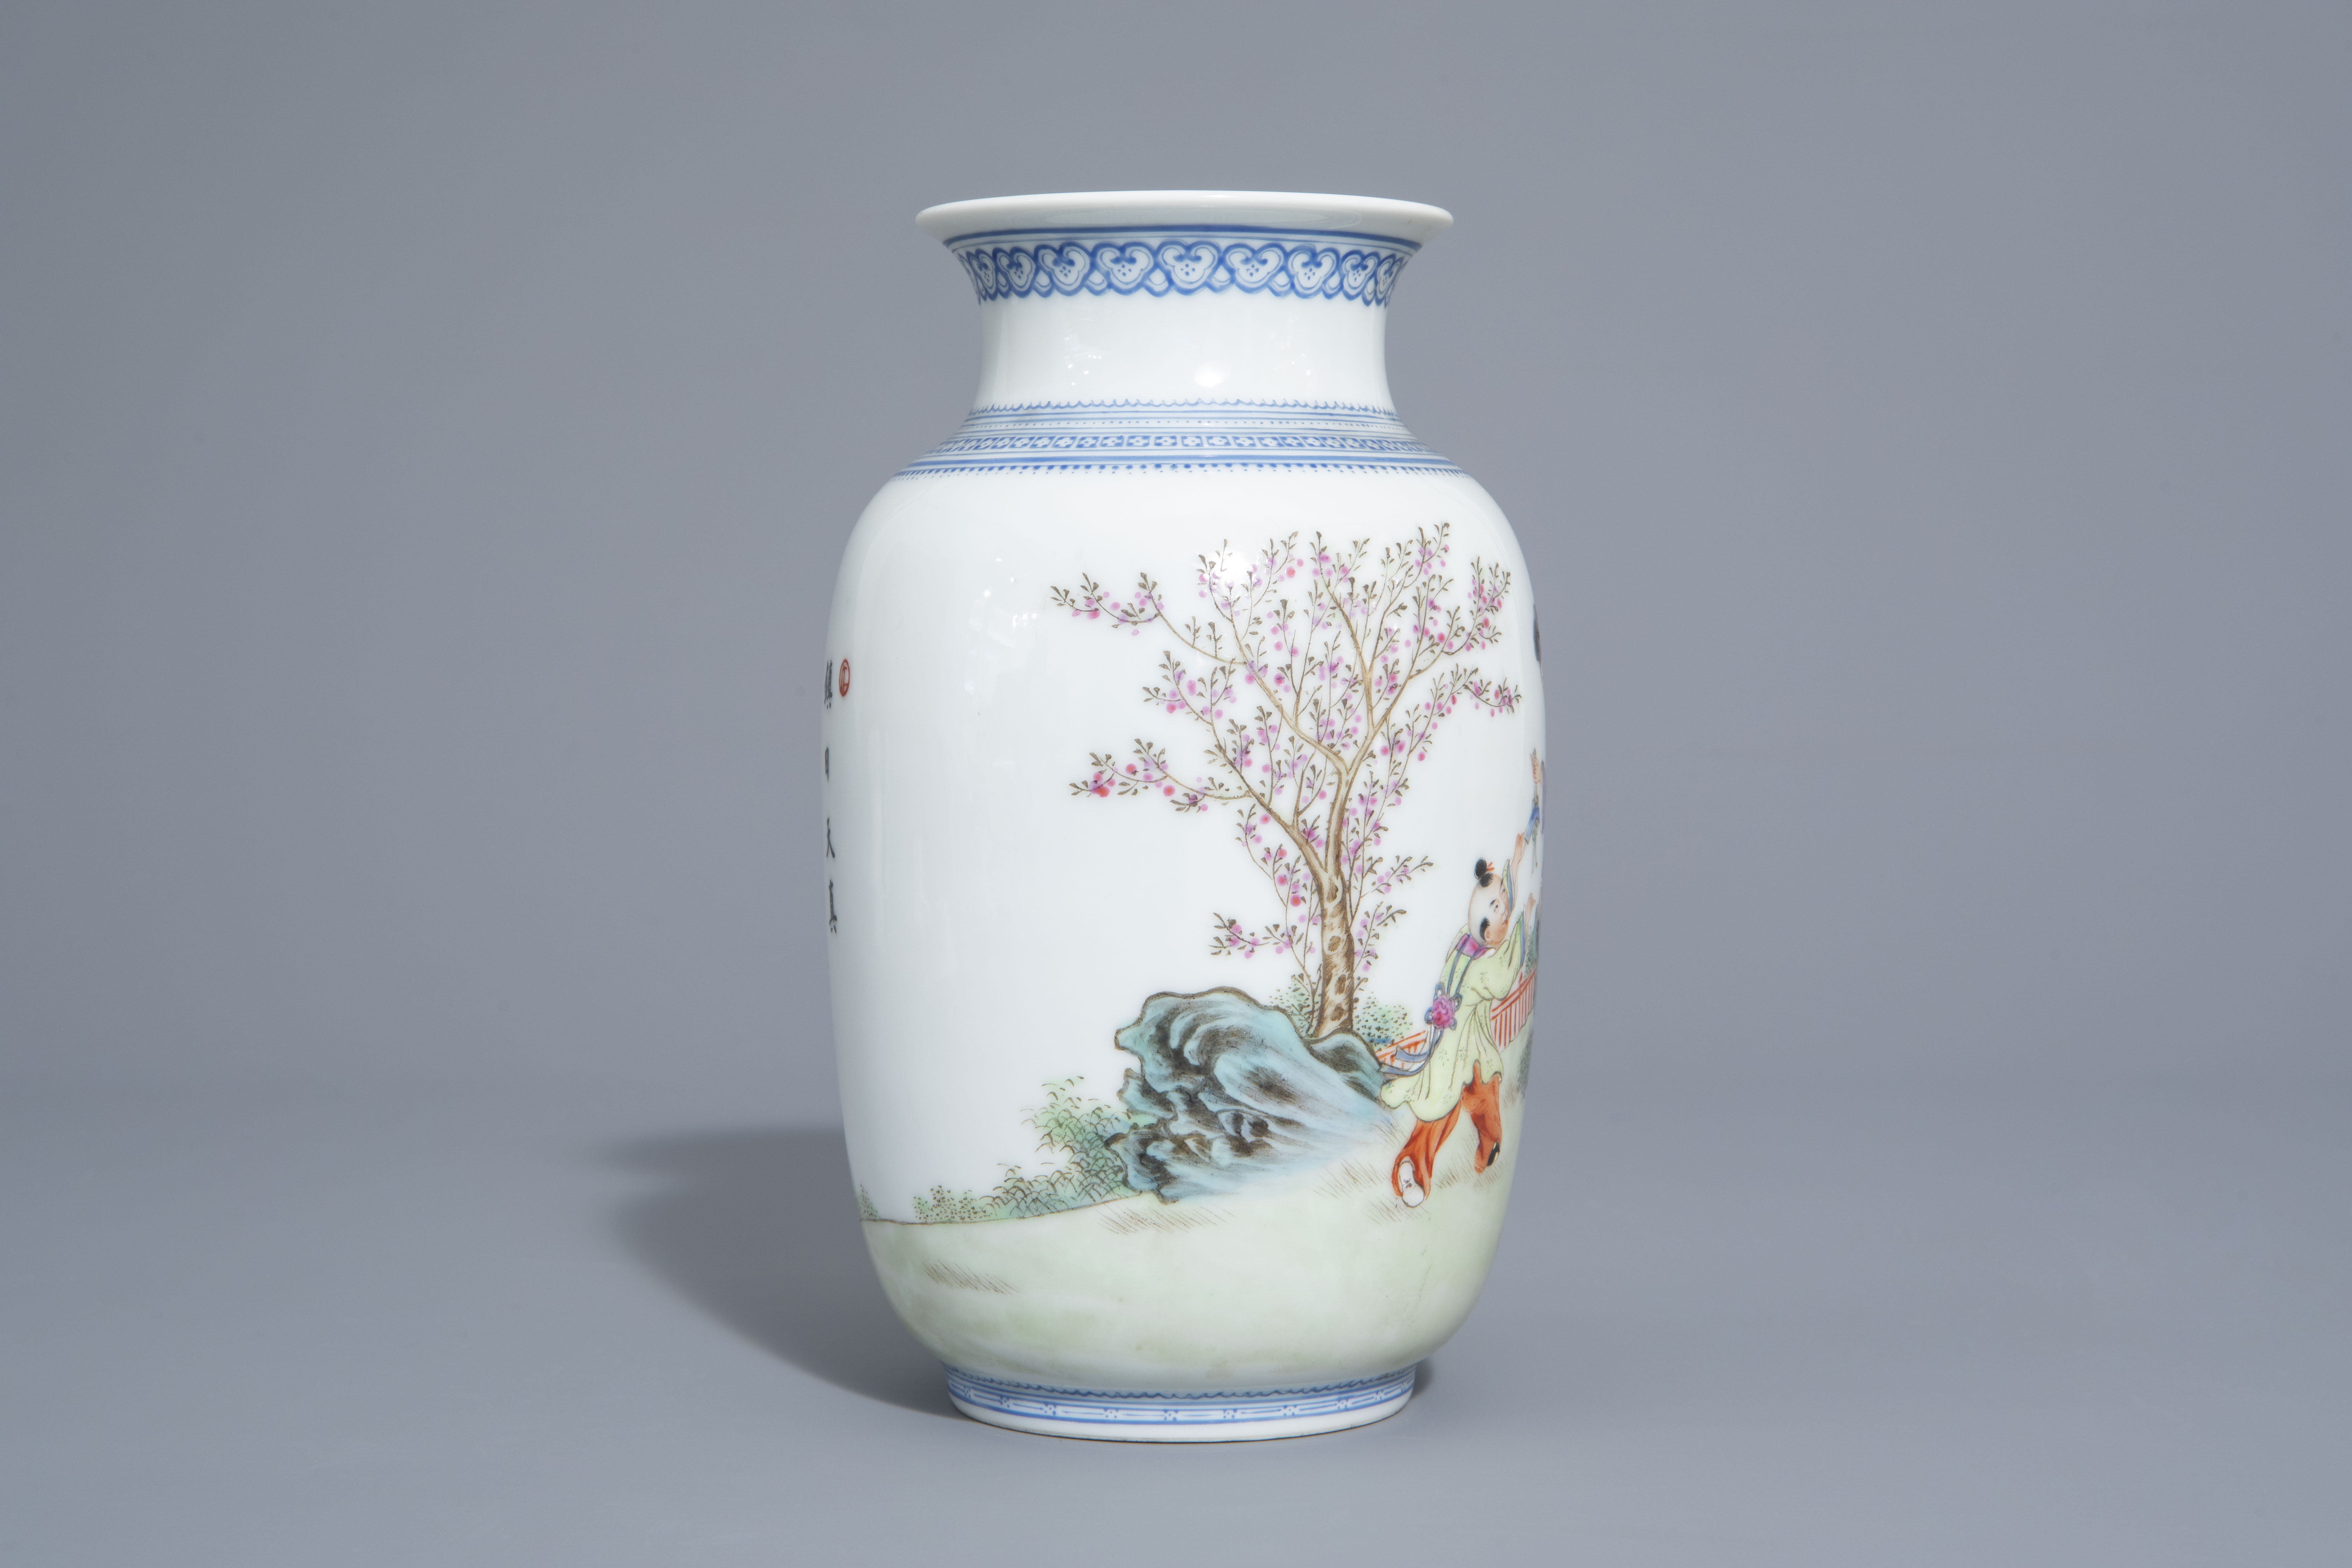 A Chinese famille rose eggshell vase and six 'Wu Shuang Pu' covers, 19th/20th C. - Image 6 of 18